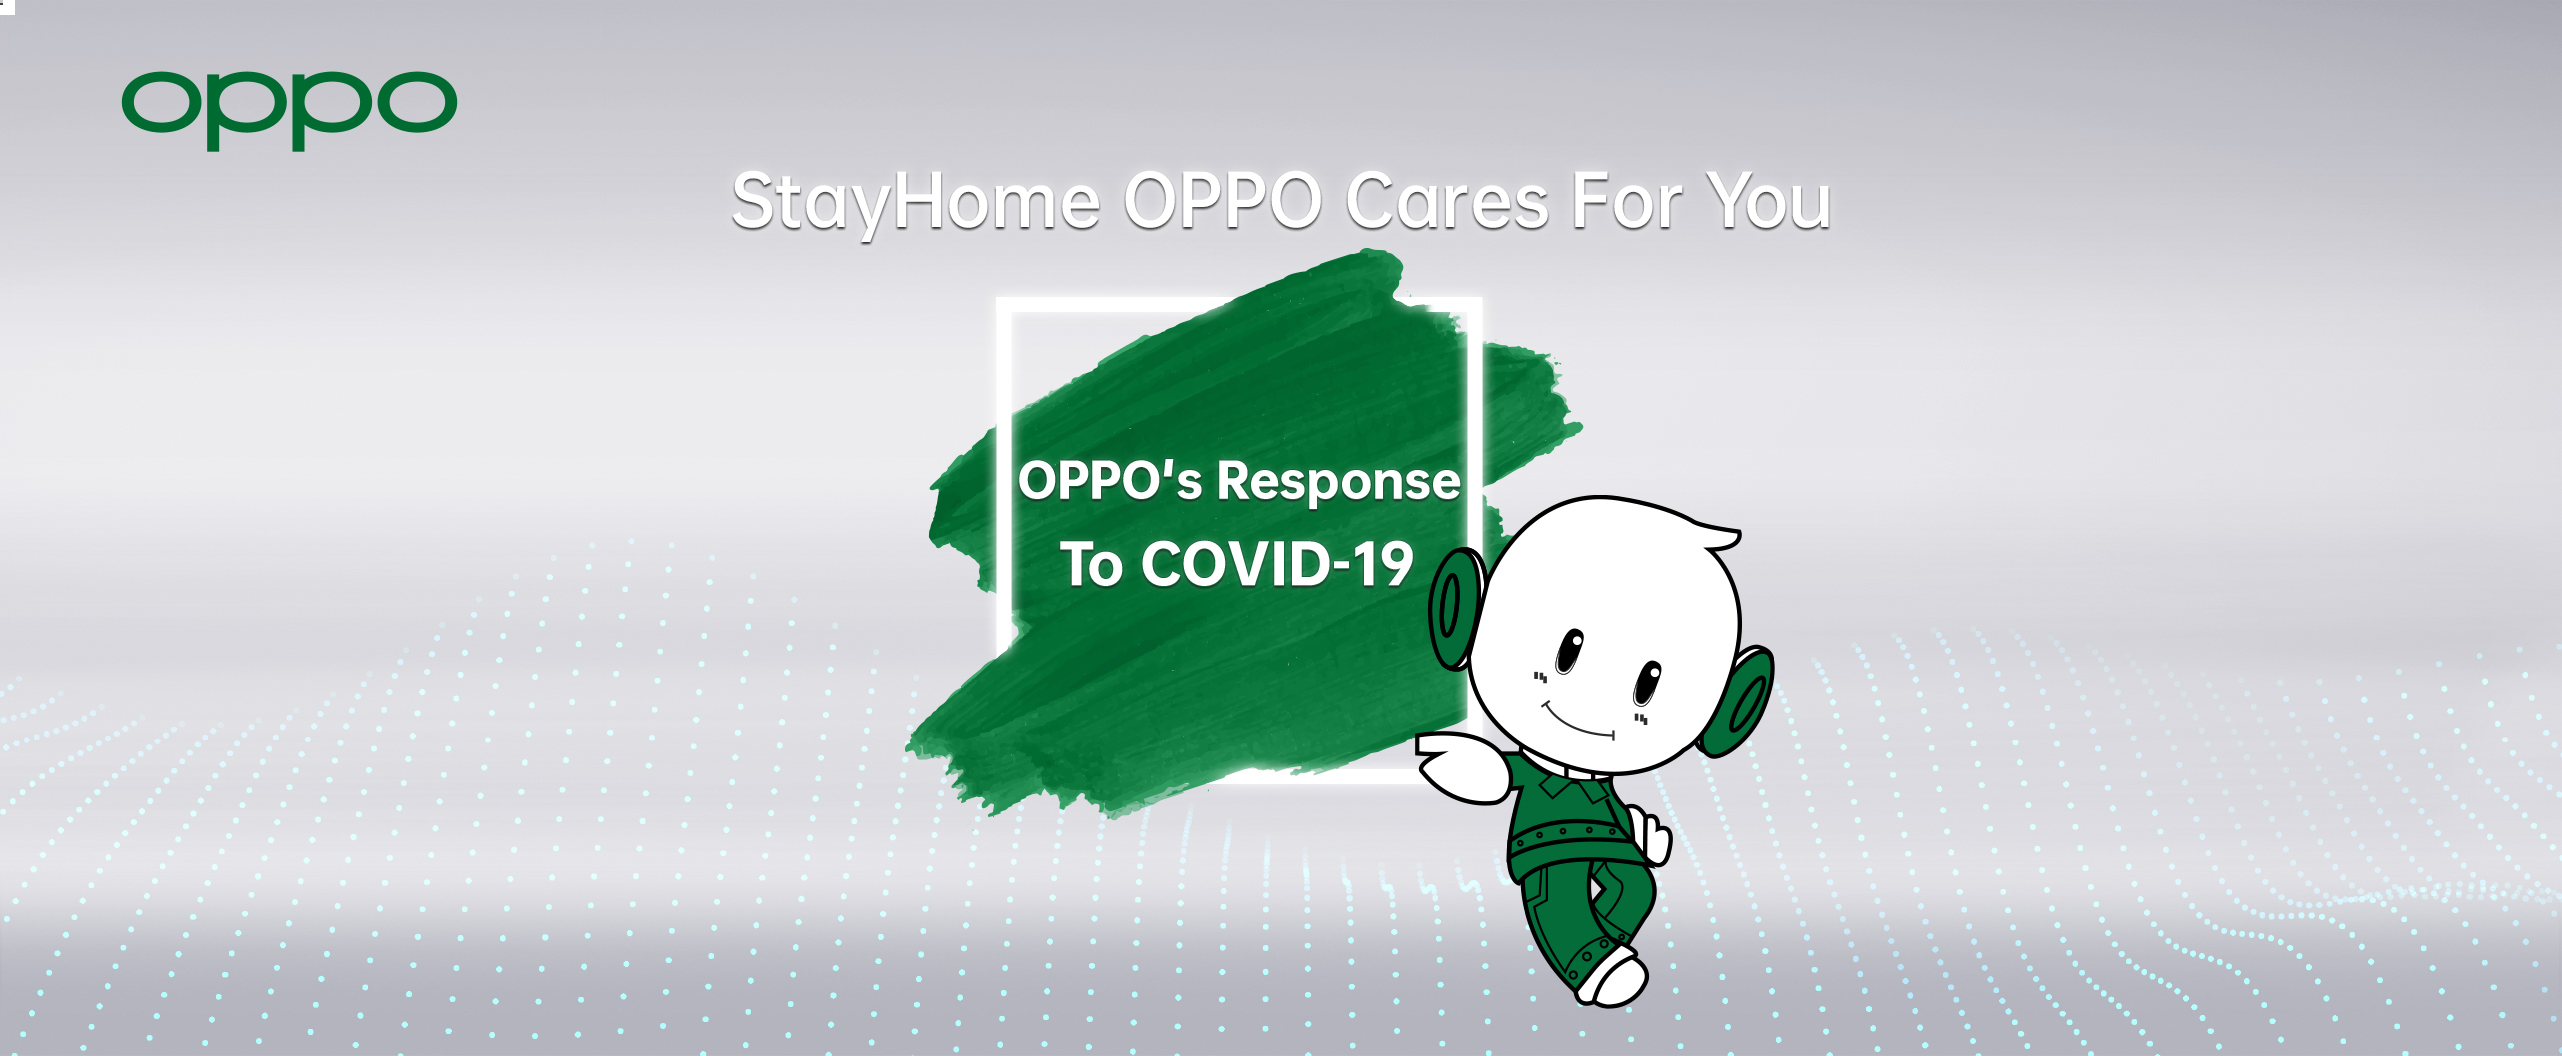 OPPO's response to COVID-19